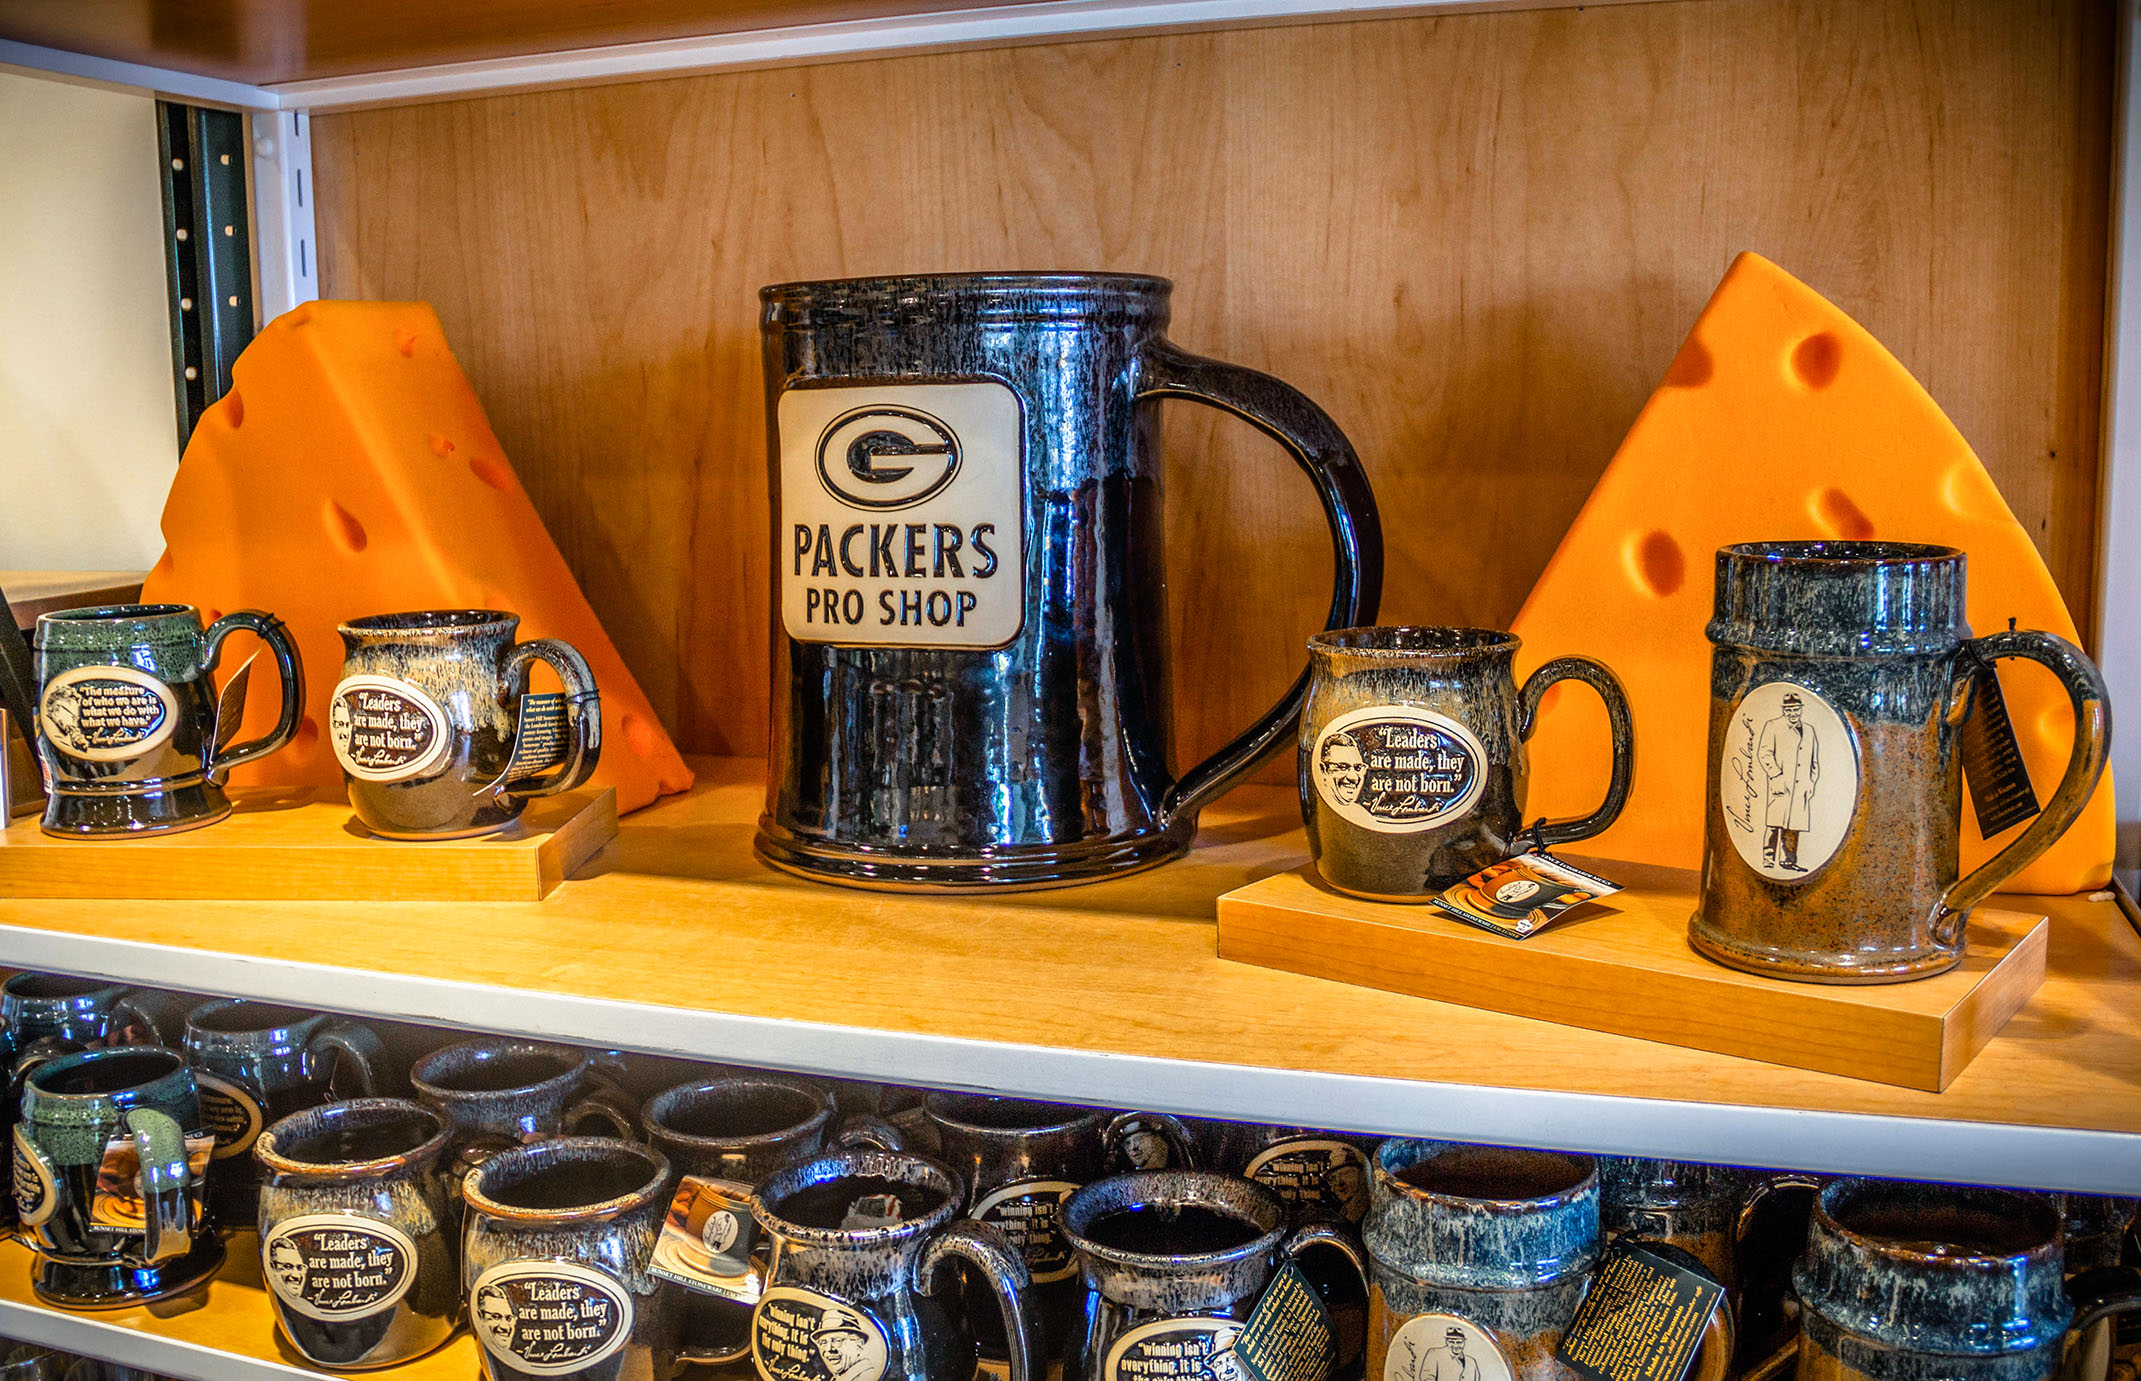 Packers Pro Shop: The Official Store of the Green and Gold